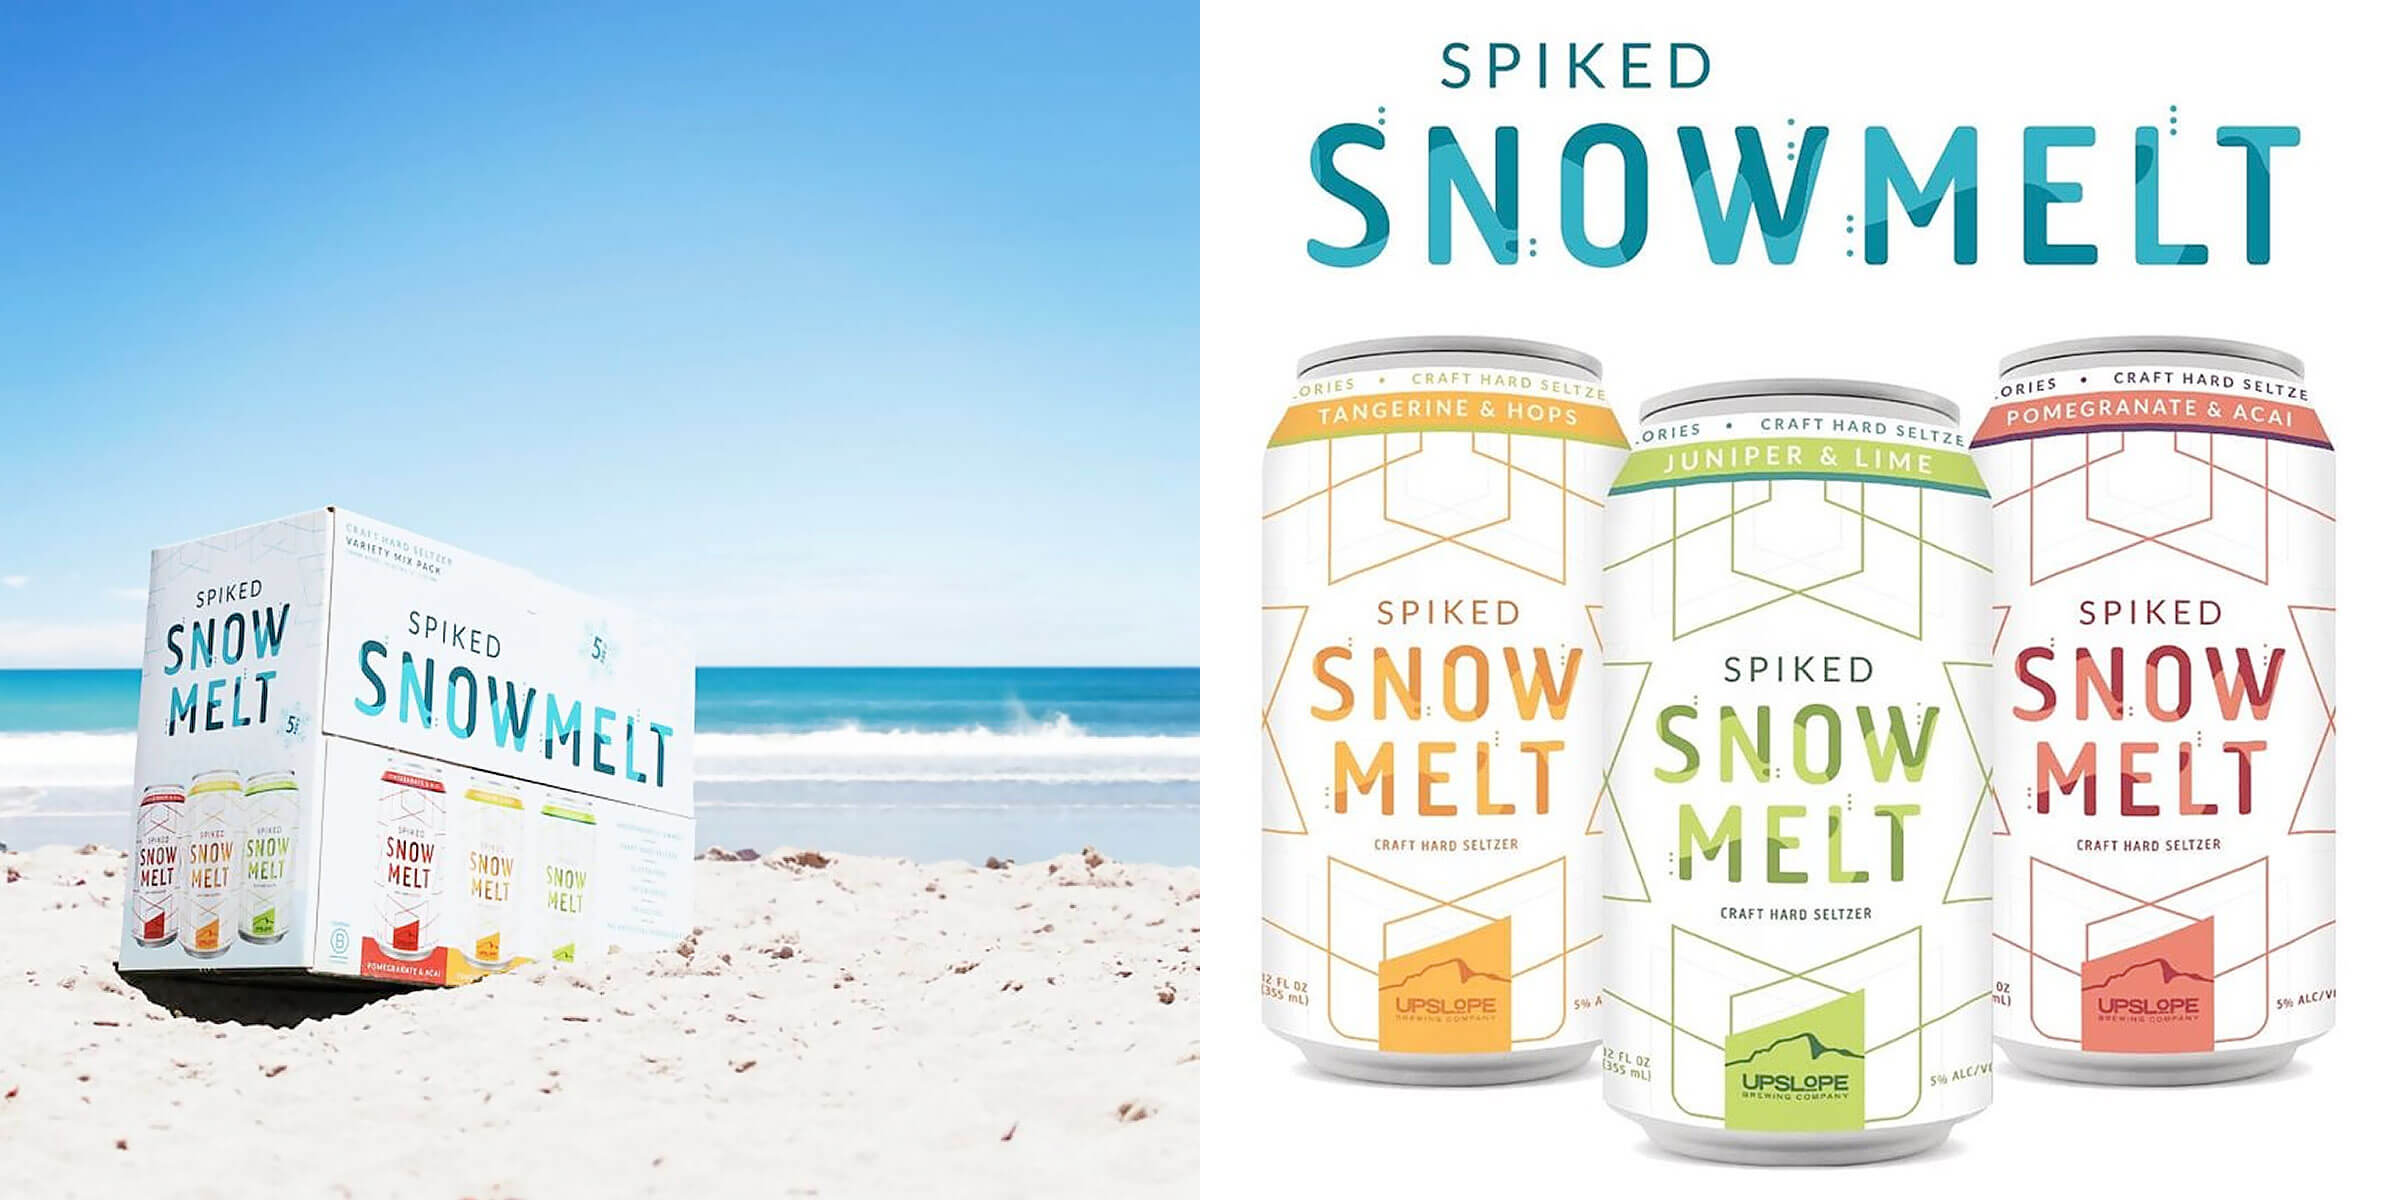 Upslope Brewing Company announced that Spiked Snowmelt, their craft hard seltzer brand, is now available in Southern California.